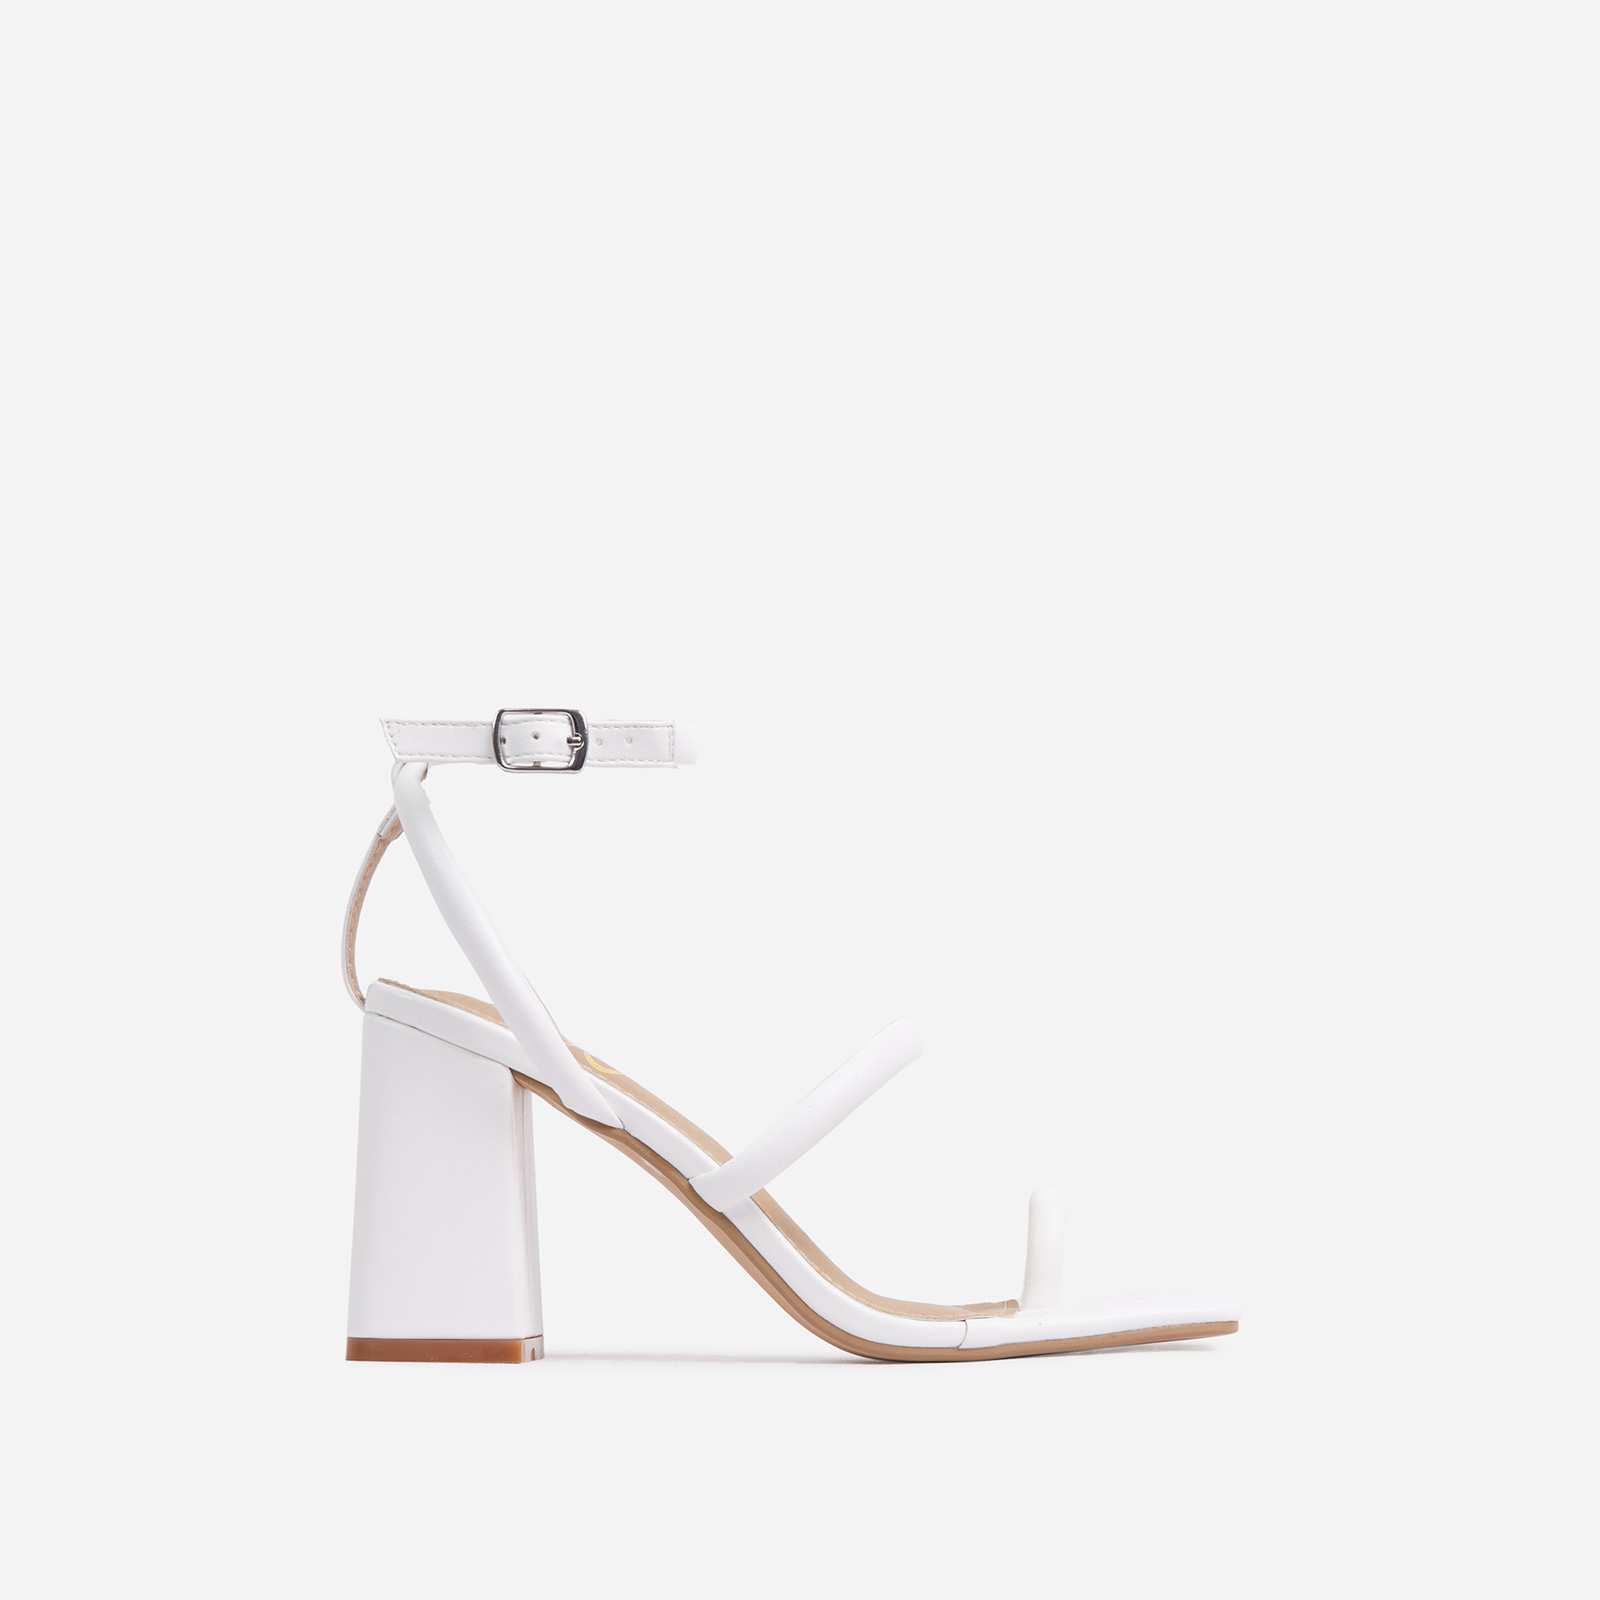 Positions Wide Fit Toe Loop Double Strap Square Toe Flared Block Heel In White Faux Leather